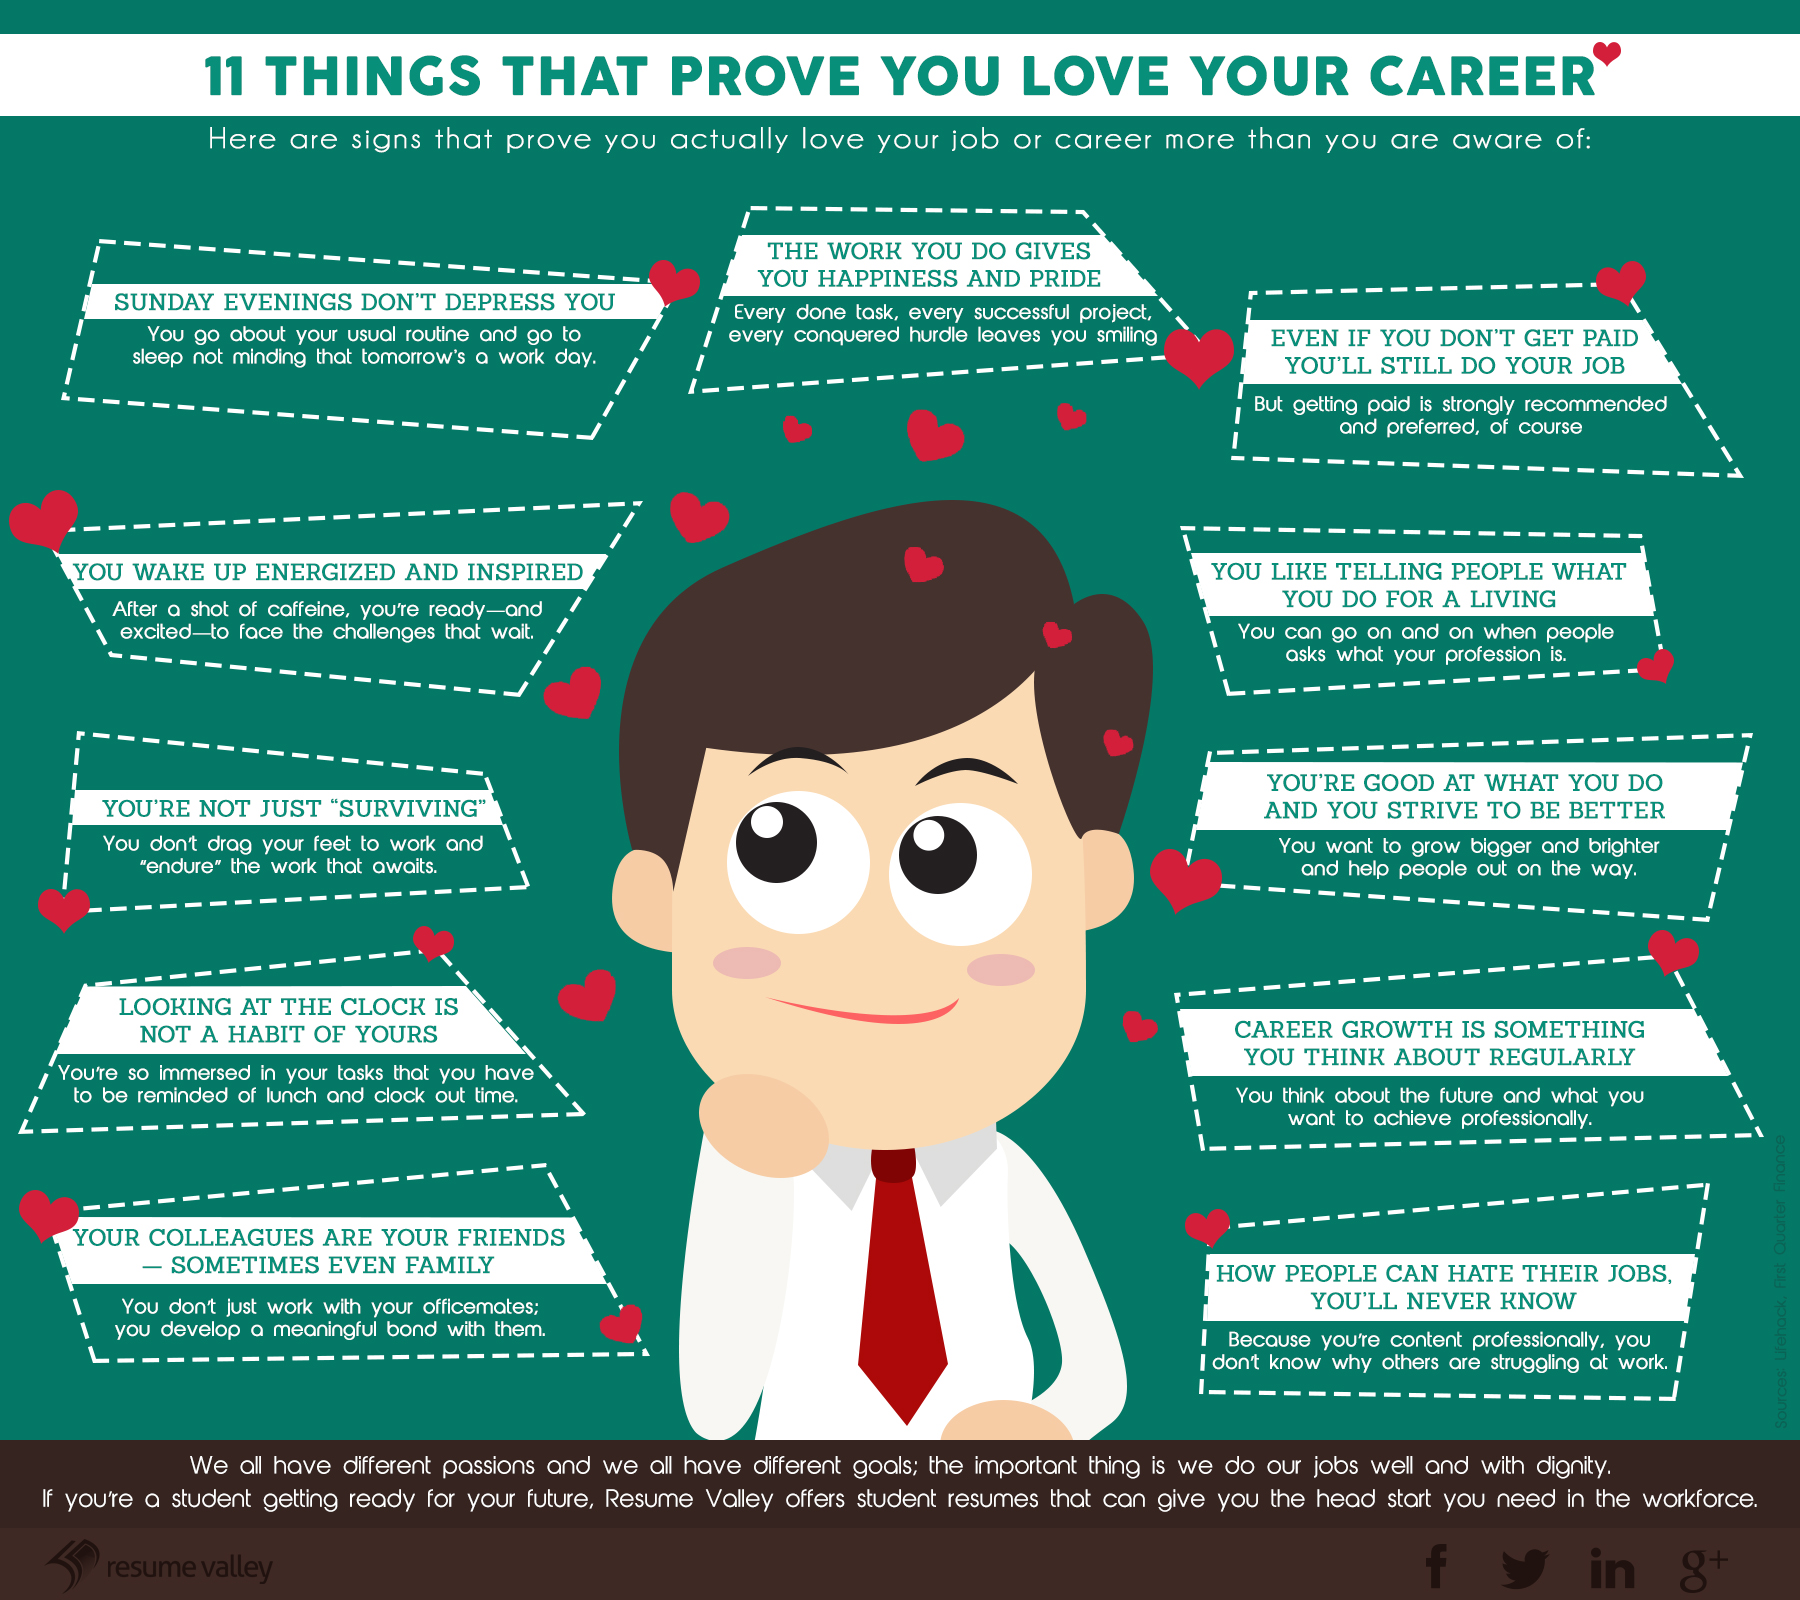 11 Things That Prove You Love Your Career [Infographic]